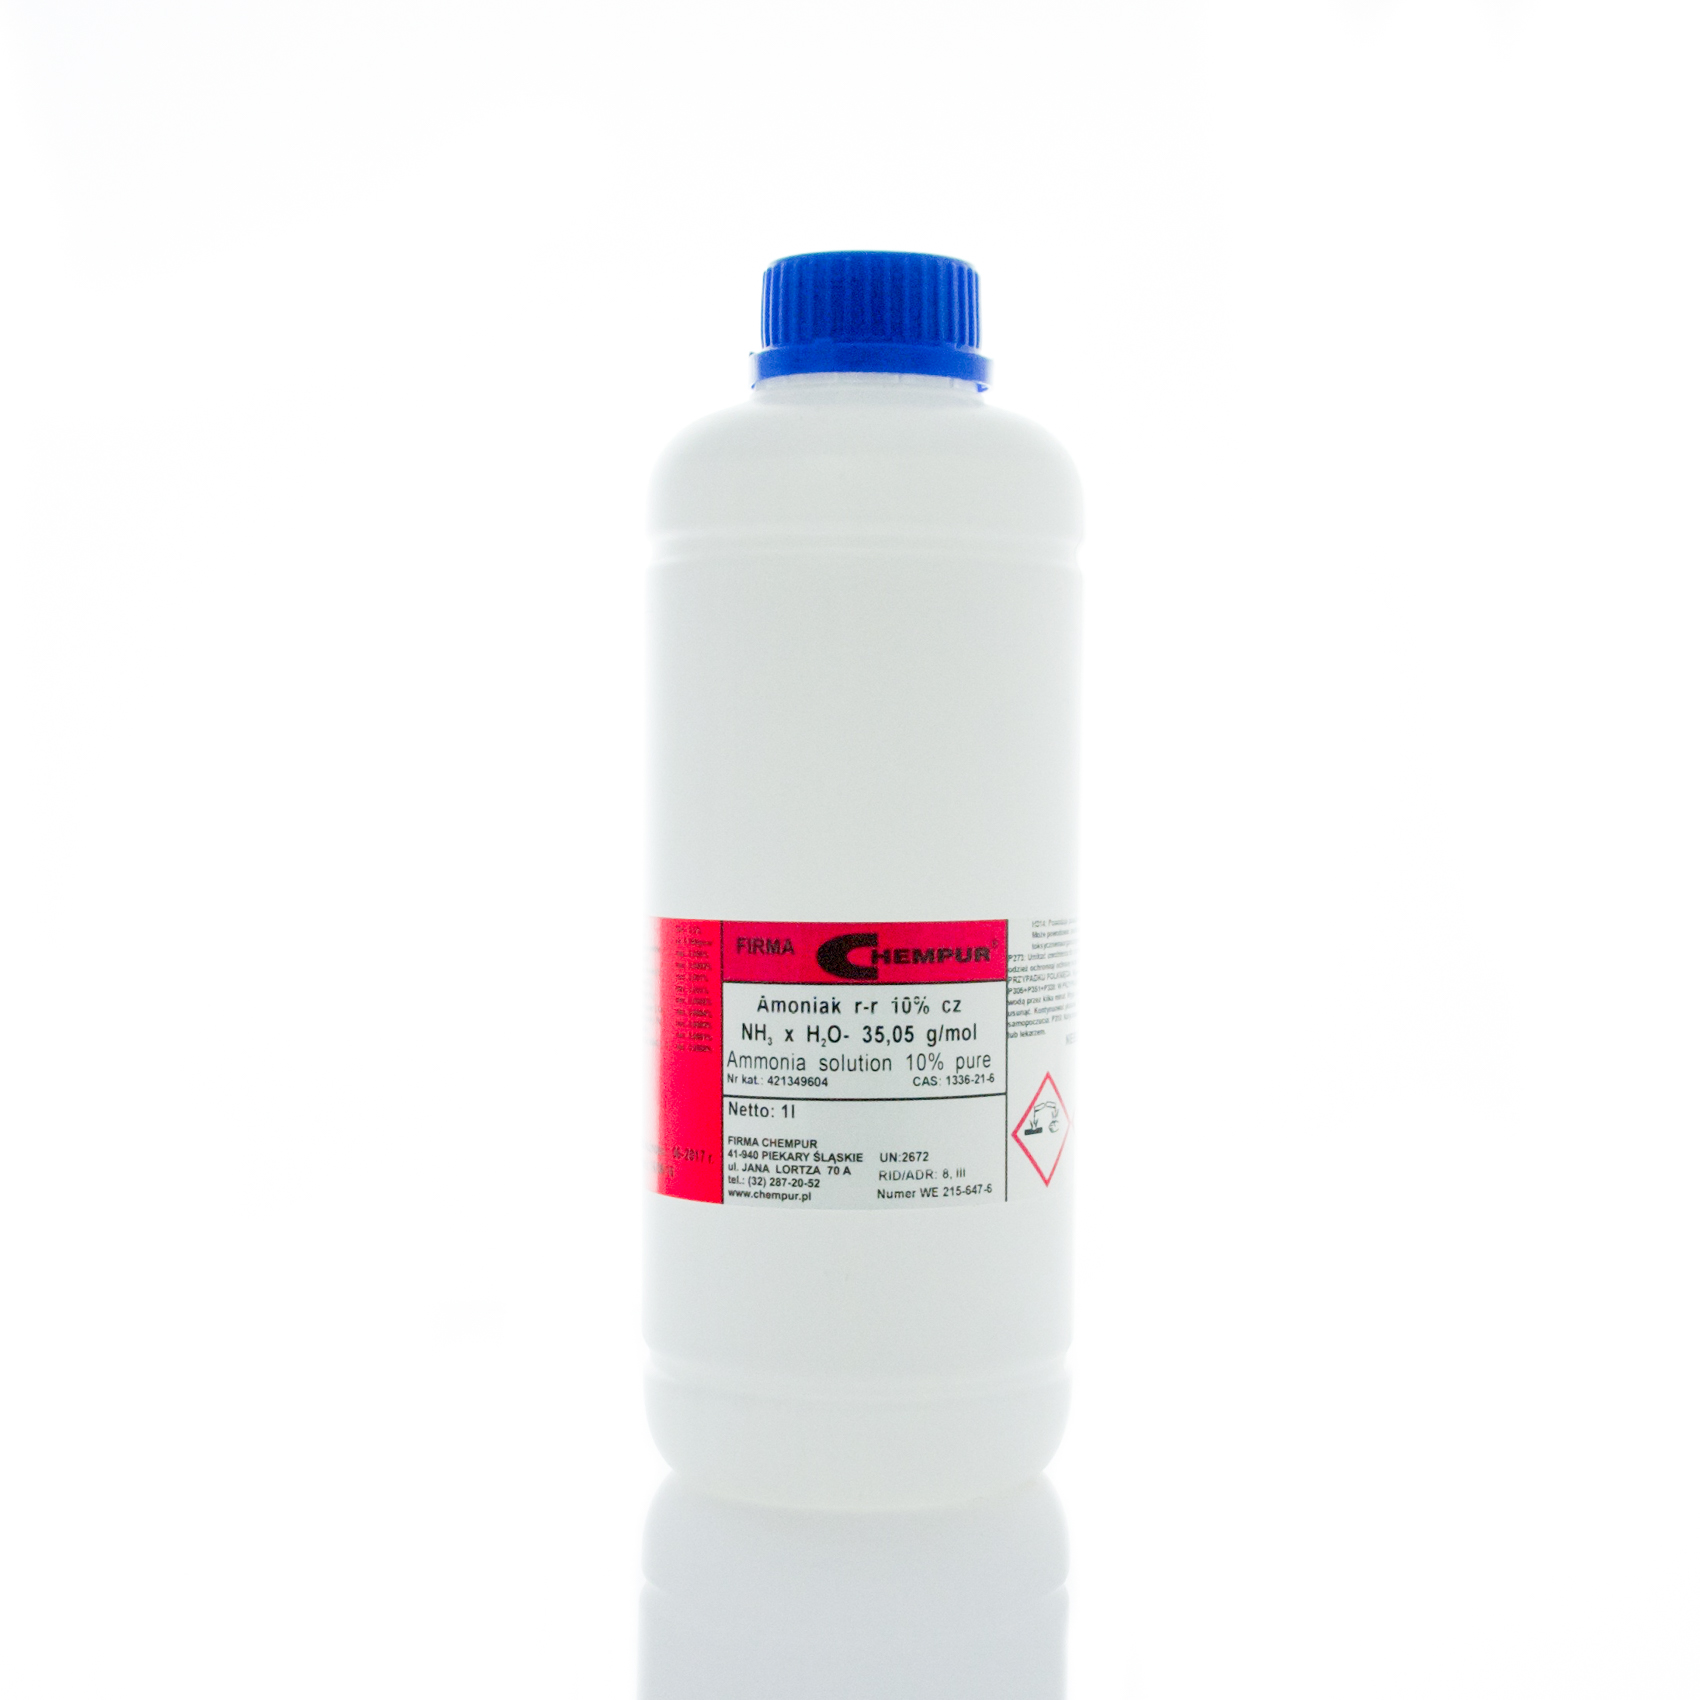 Ammonia solution 10% pure